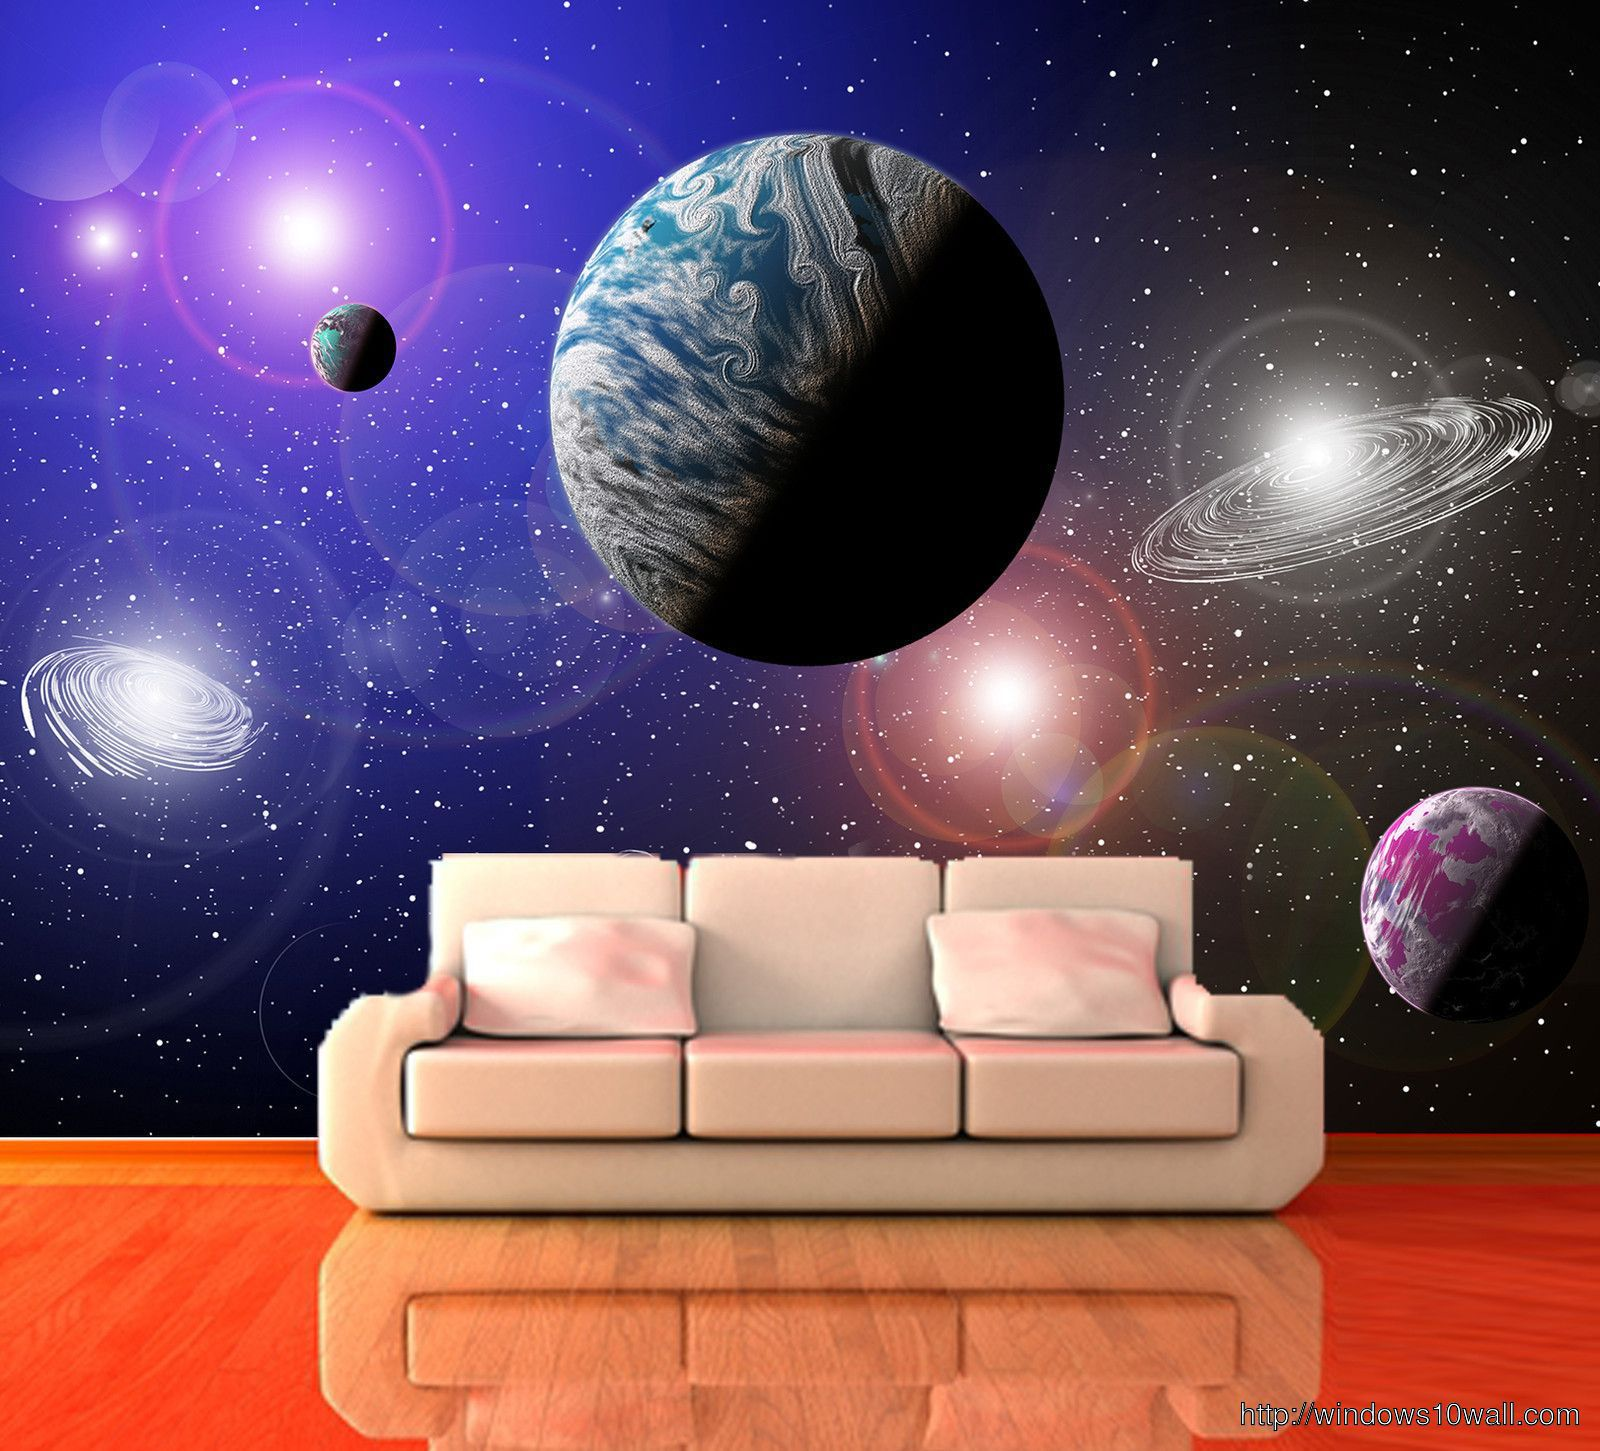 Universe decorating wallpaper for bedroom windows 10 for Universe wallpaper for walls